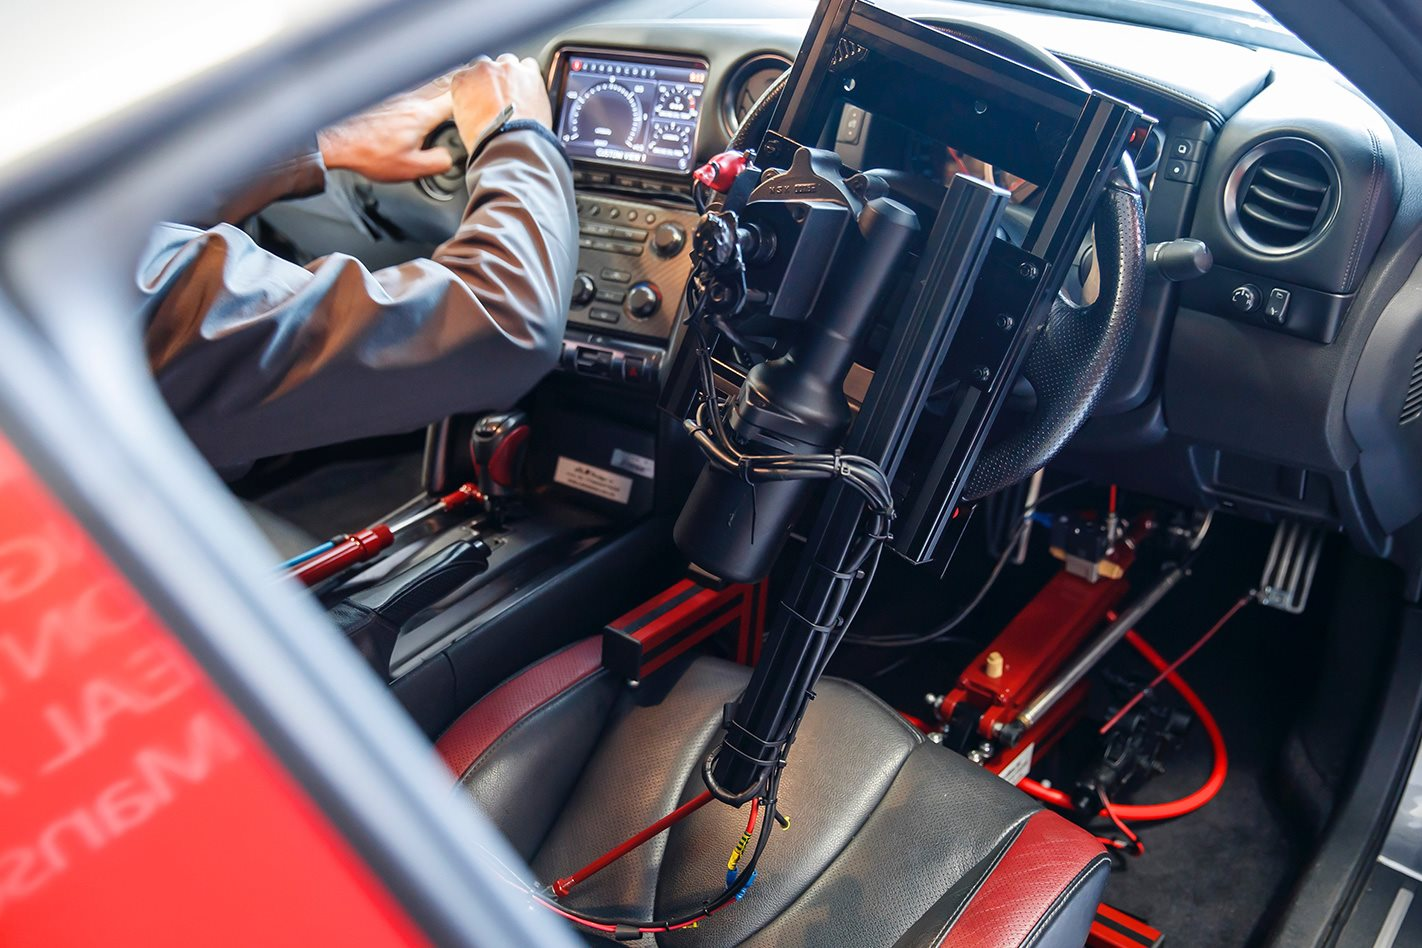 Nissan unleashes the ultimate radio-control vehicle